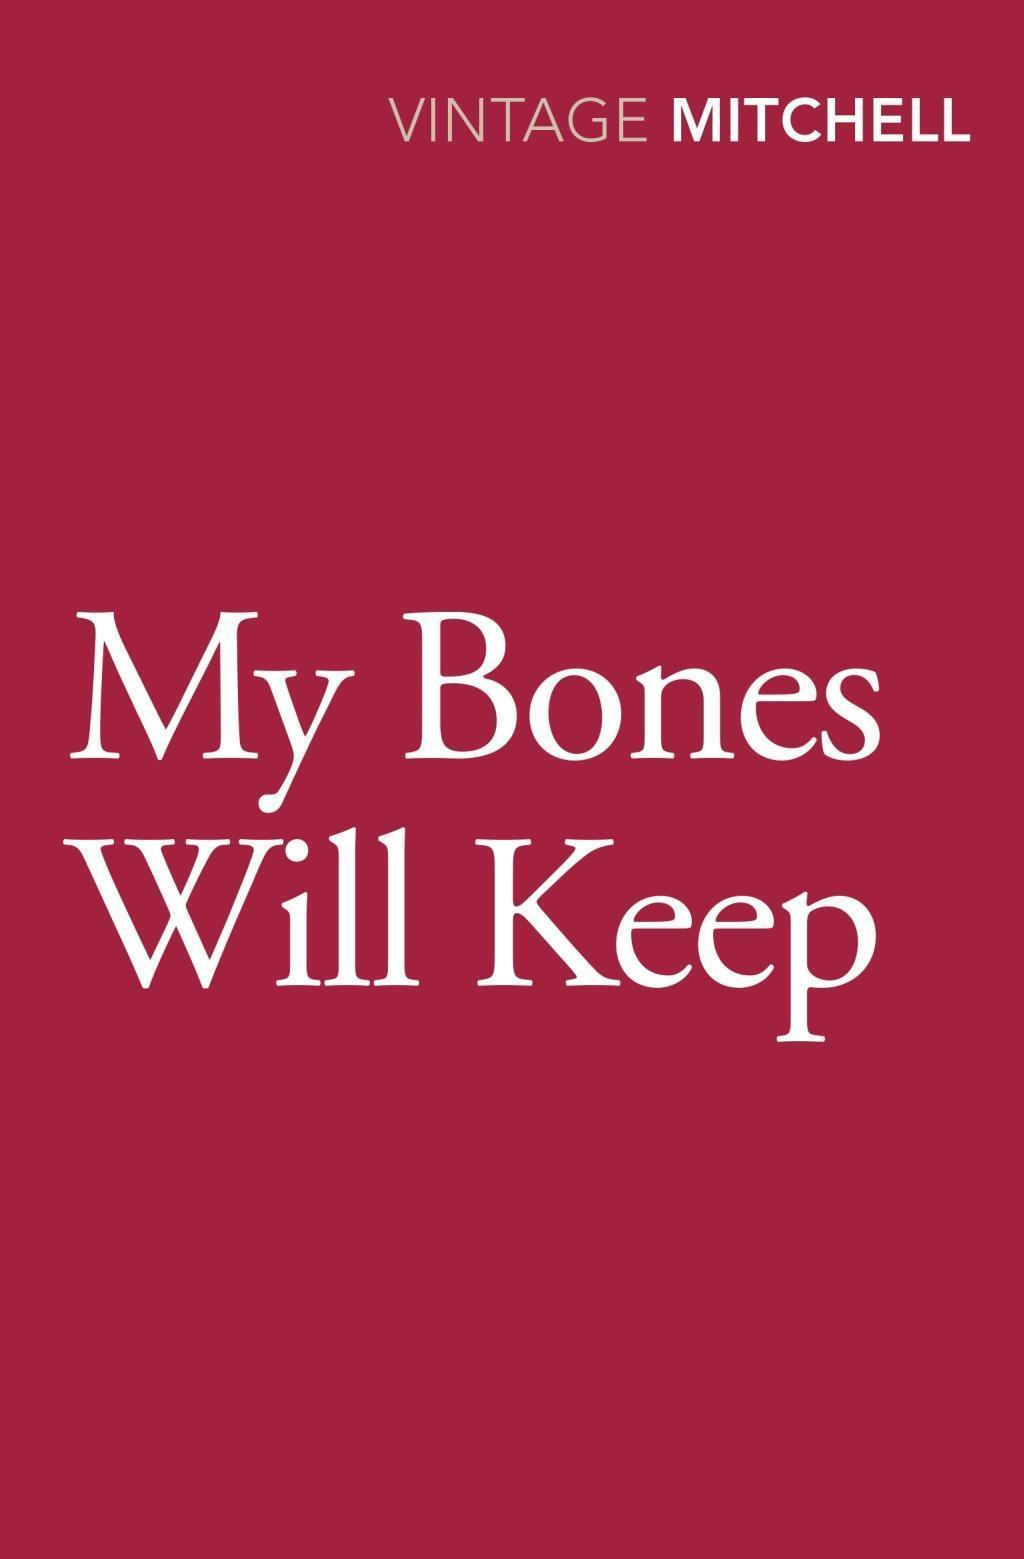 My Bones Will Keep